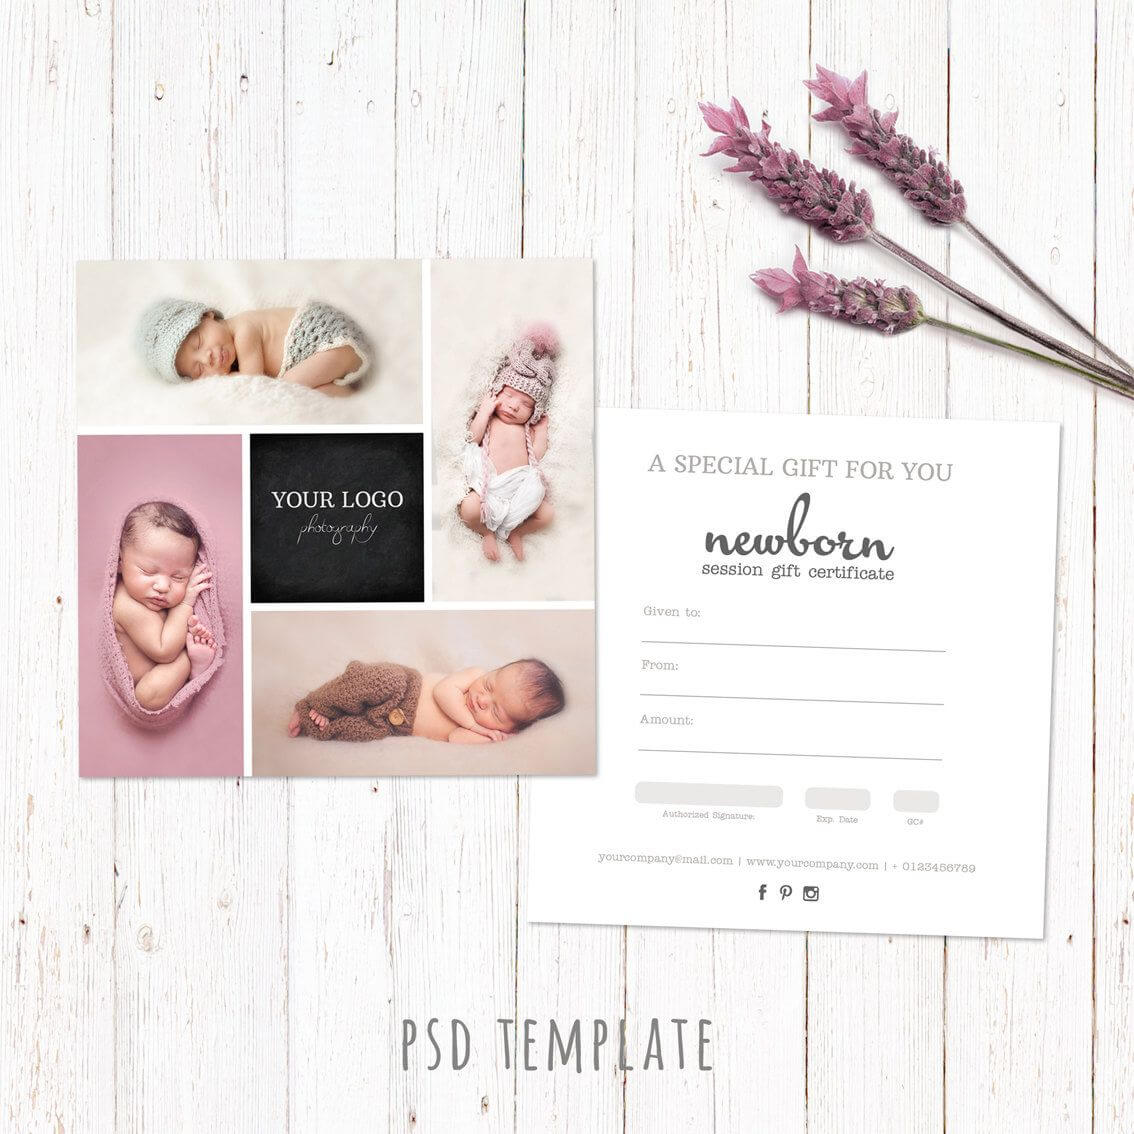 Gift Certificate Template. Newborn Session Photography Gift With Regard To Photoshoot Gift Certificate Template